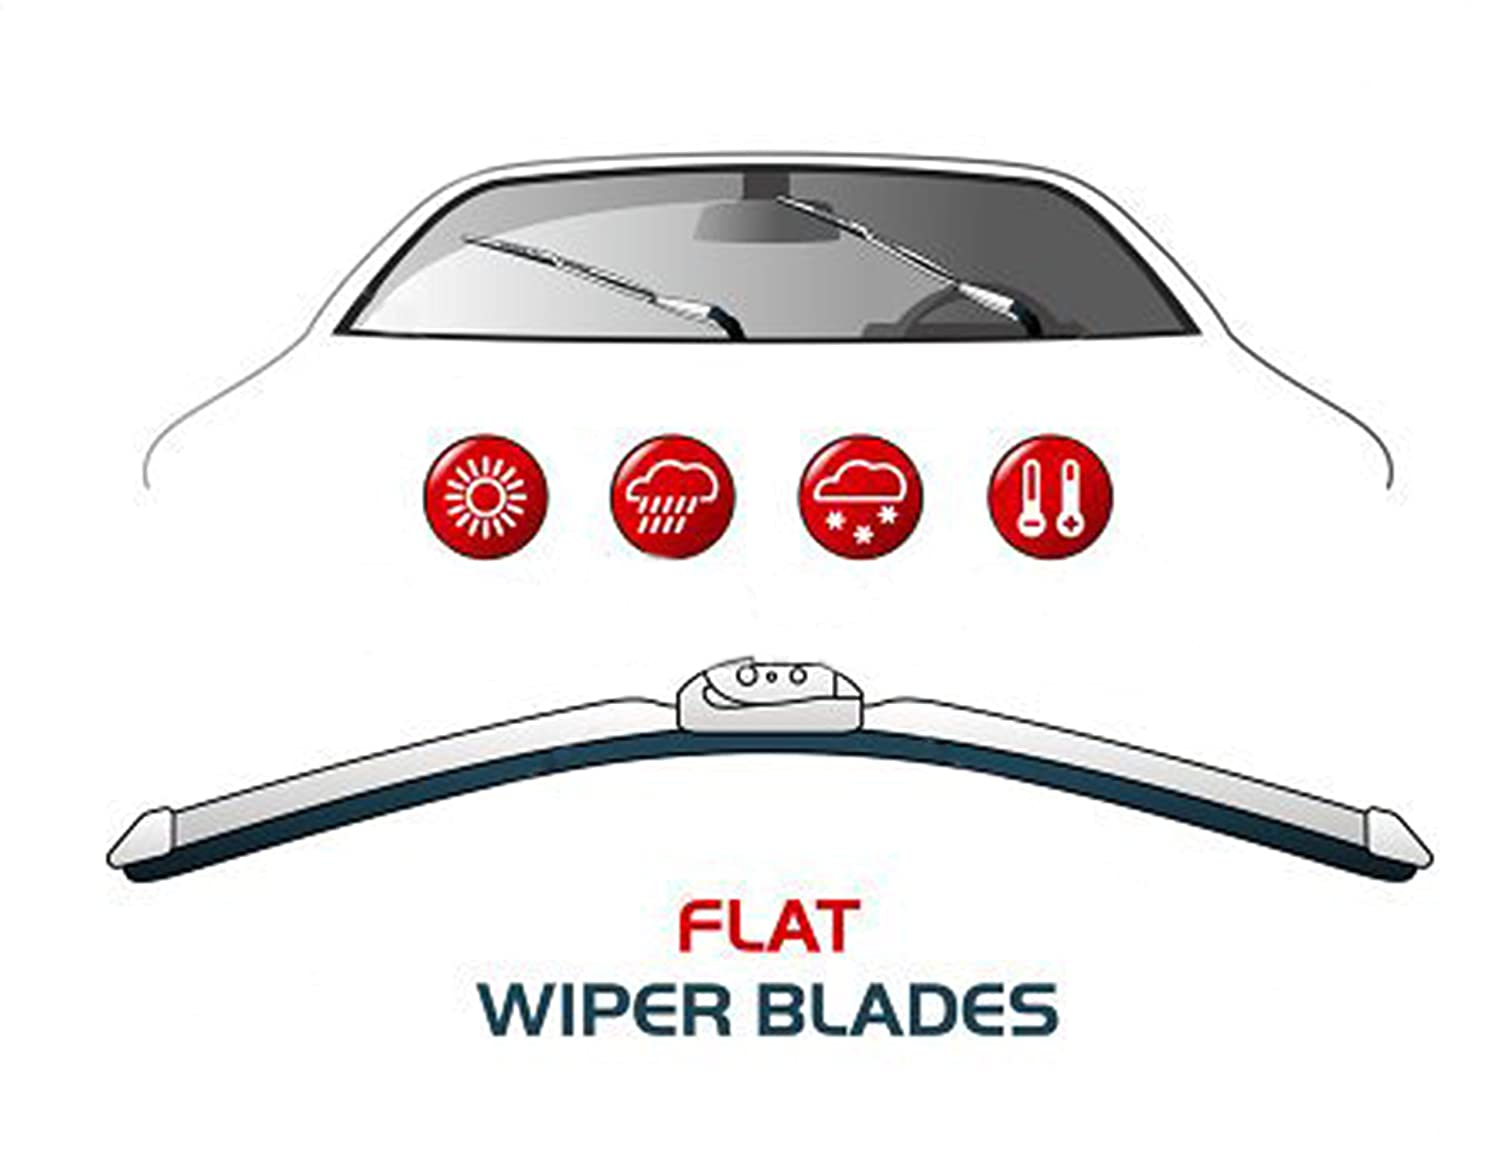 Amazon.com: Soft Flat Wiper Blade-Quick fit Multifunction type Easy to install (18